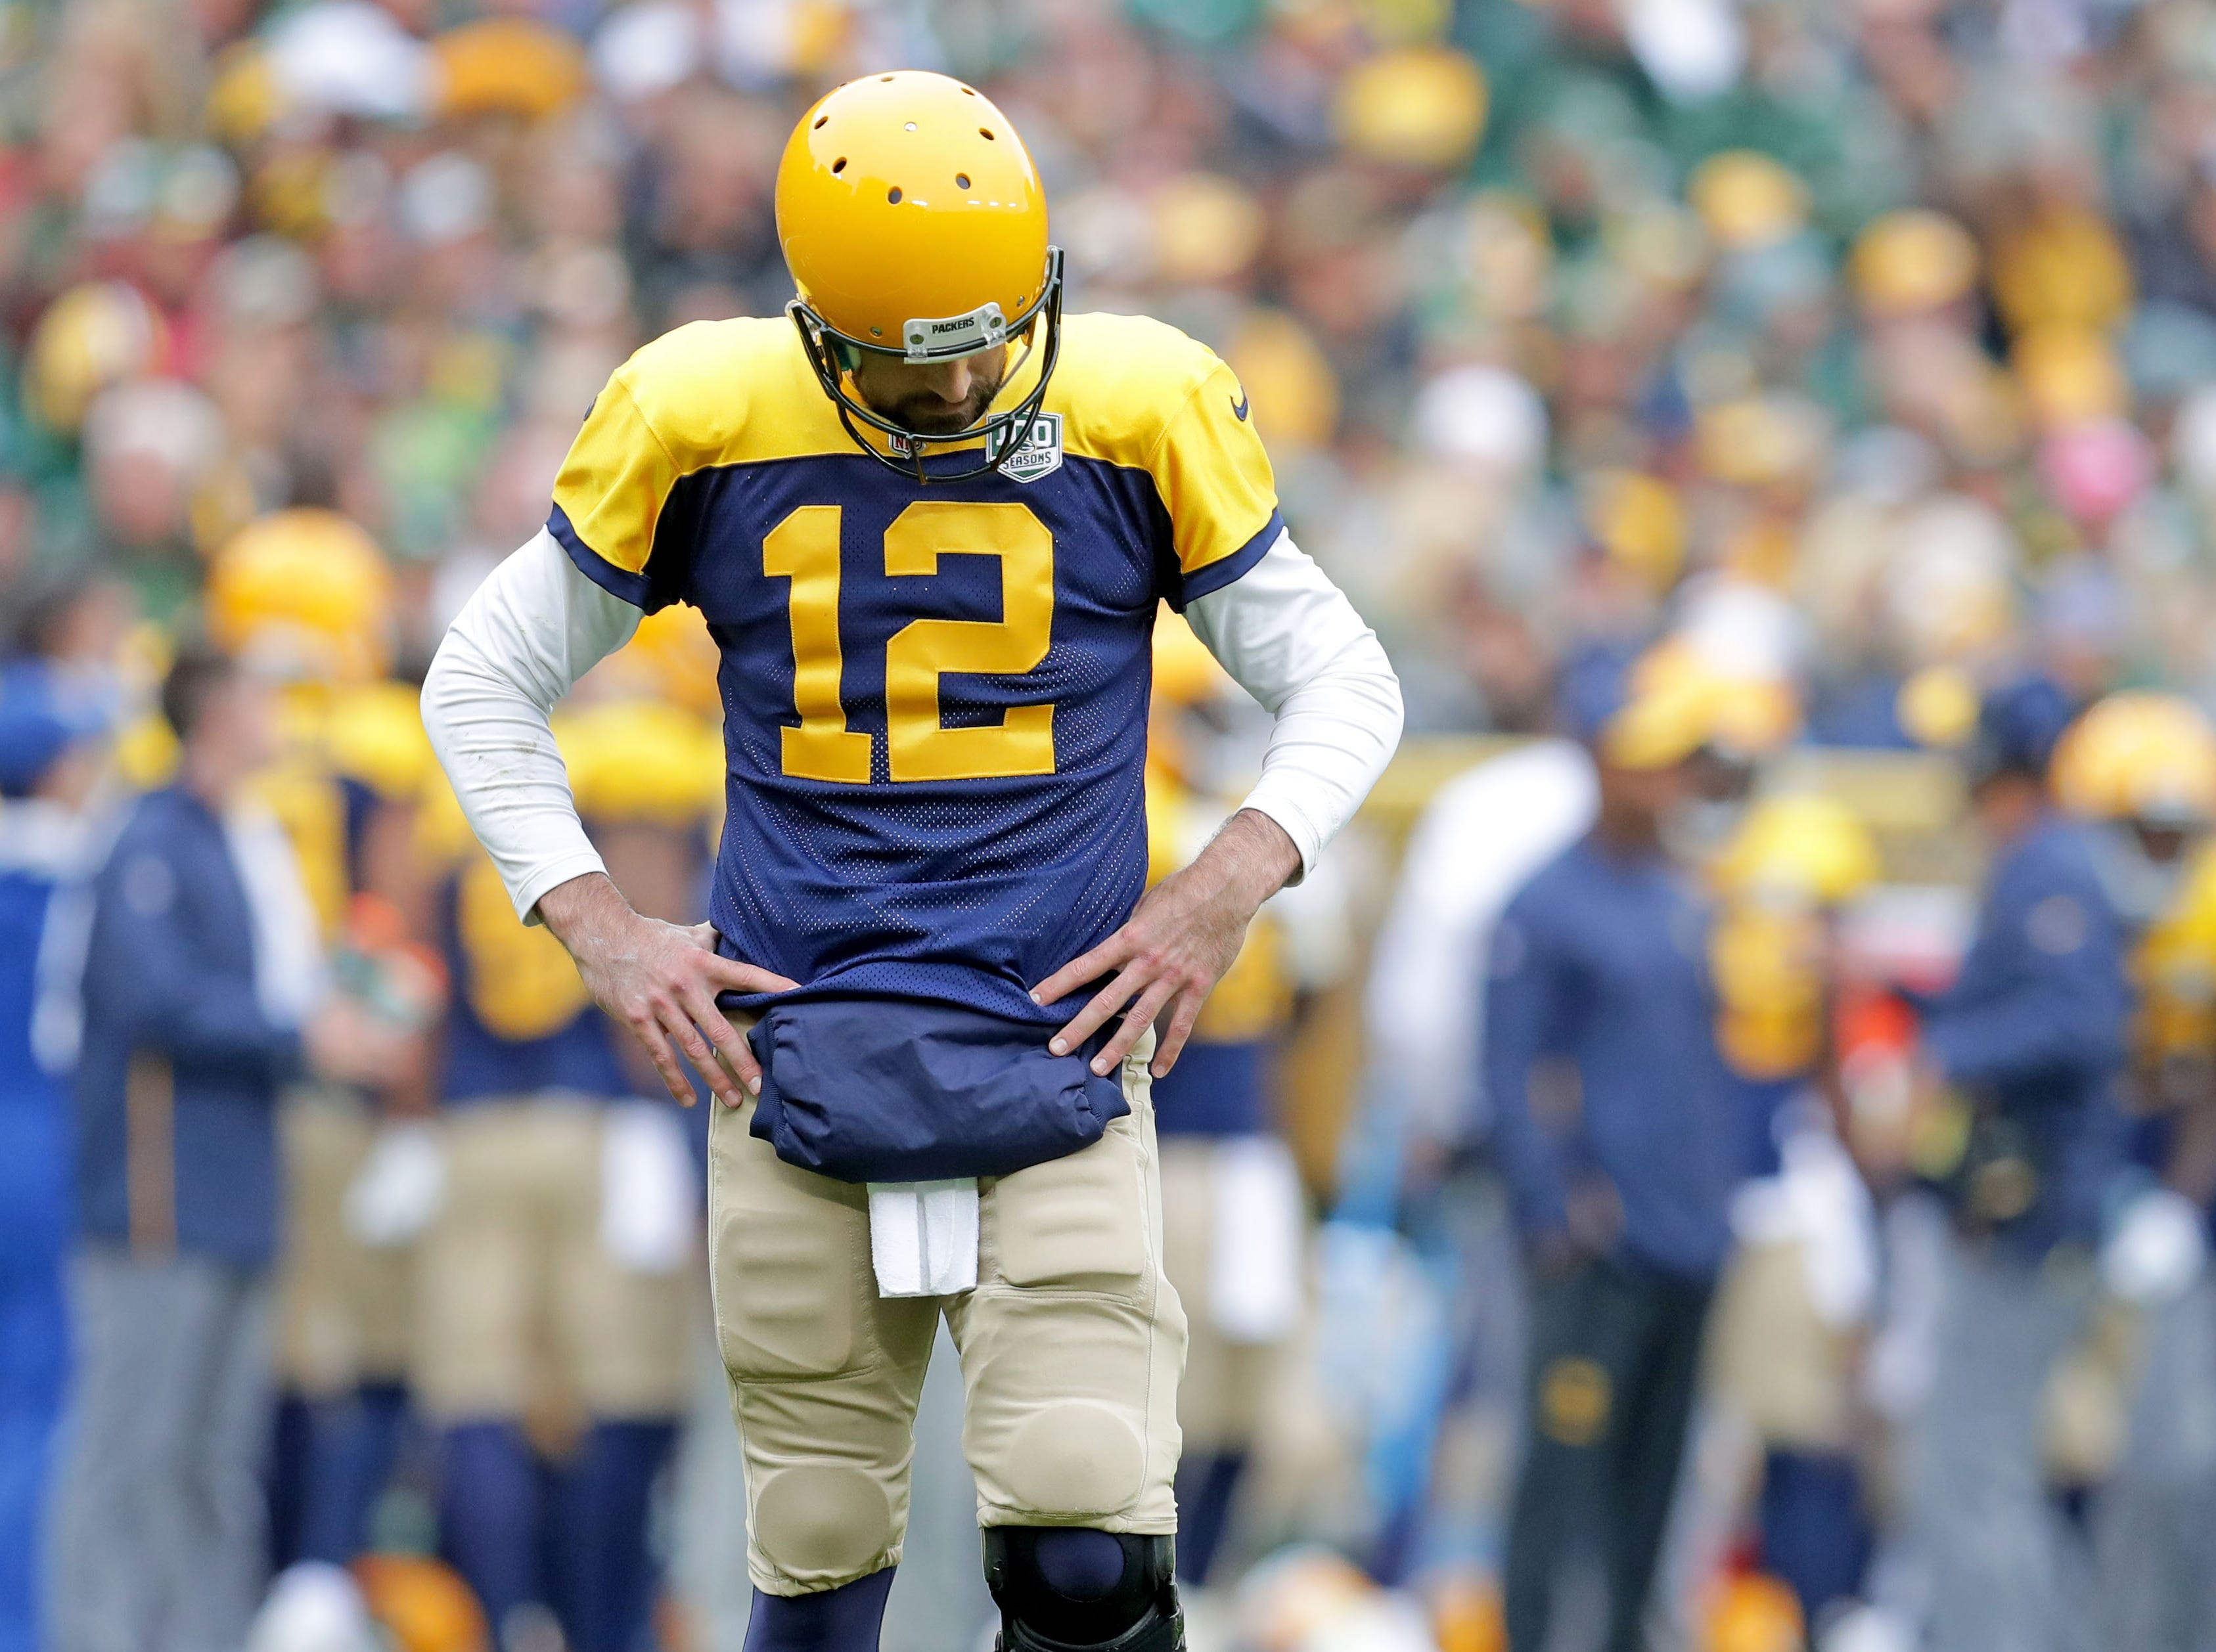 Green Bay Packers quarterback Aaron Rodgers (12) is dejected after a broken up pass during the first quarter of the Green Bay Packers game against the Buffalo Bills at Lambeau Field in Green Bay, Wis. on Sunday, September 30, 2018. Mike De Sisti /USA TODAY NETWORK-Wisconsin